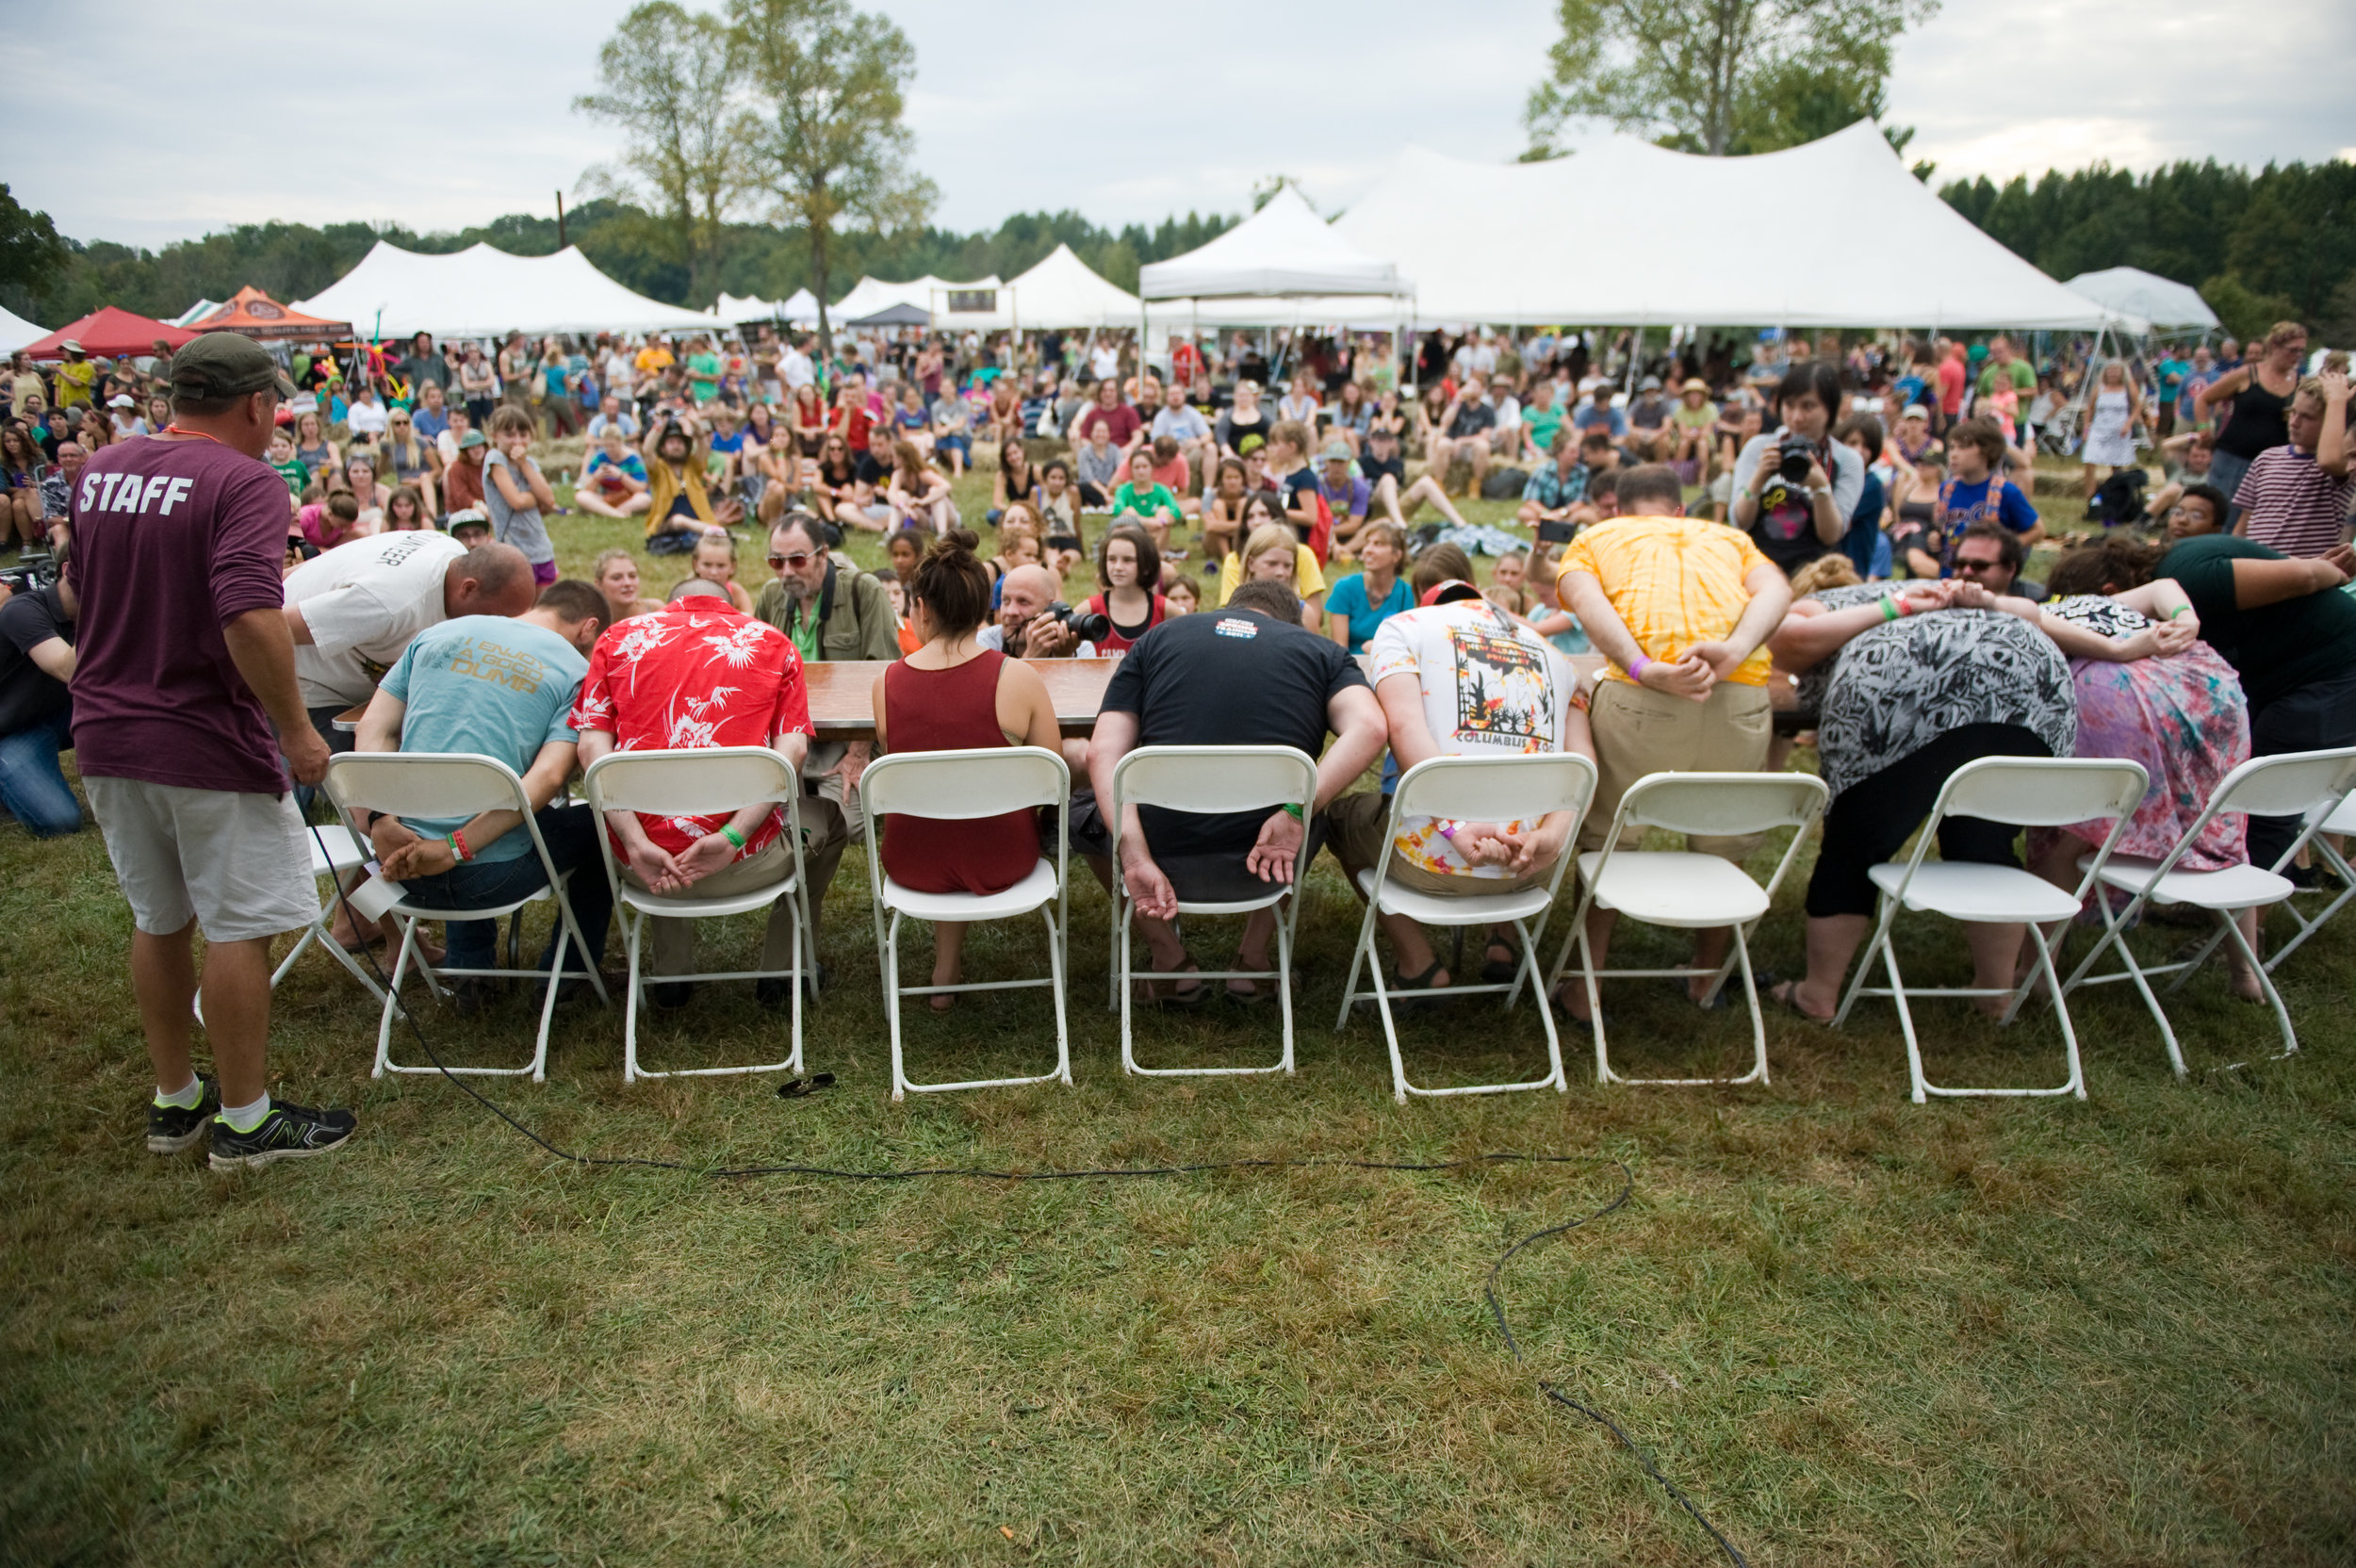 Festival attendees participating in a pawpaw eating contest, as the other fest goers cheer them on. Photo by  Michelle Waters